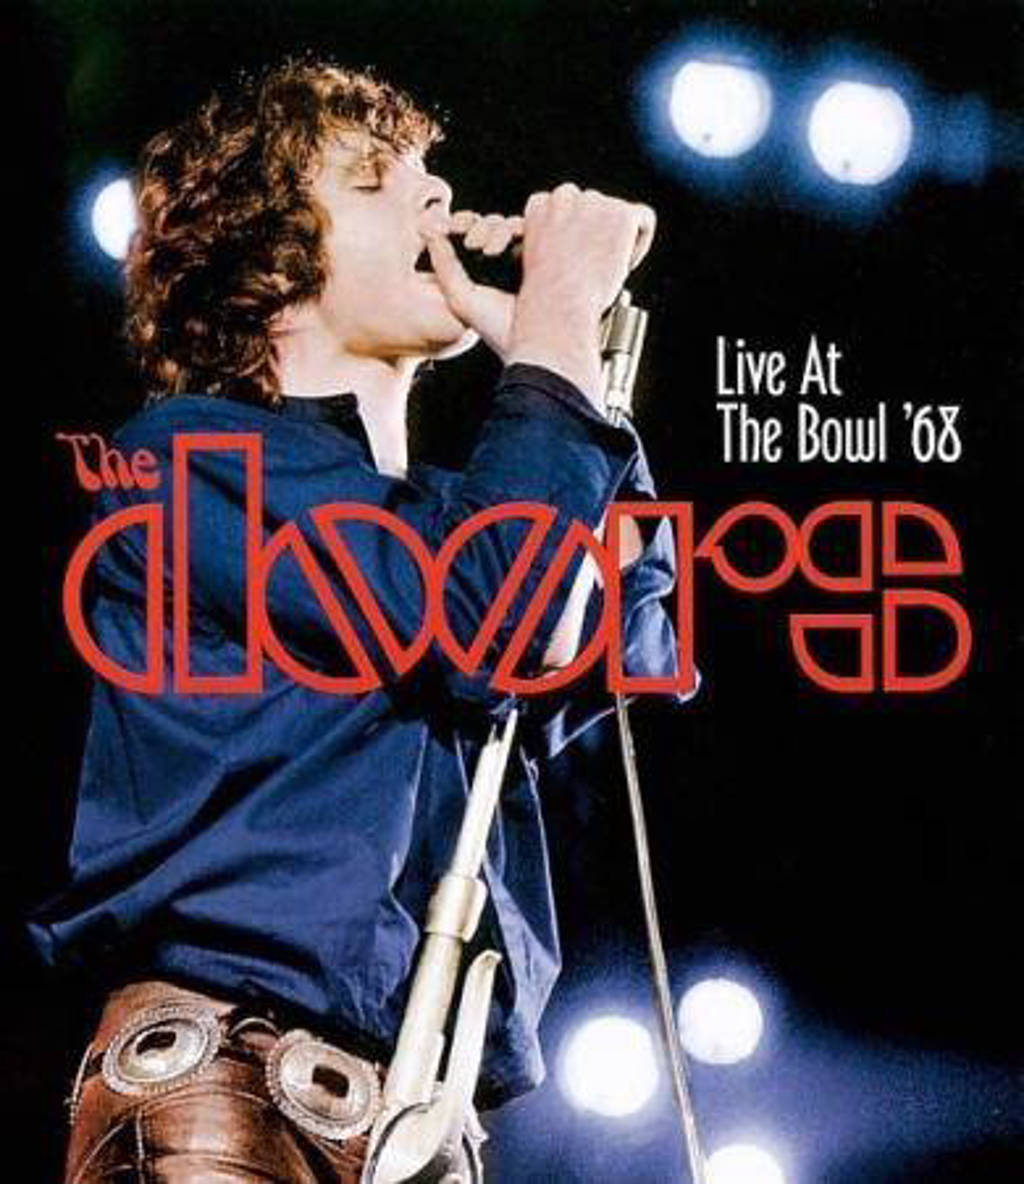 The Doors - Live At The Bowl 68 (Blu-ray)